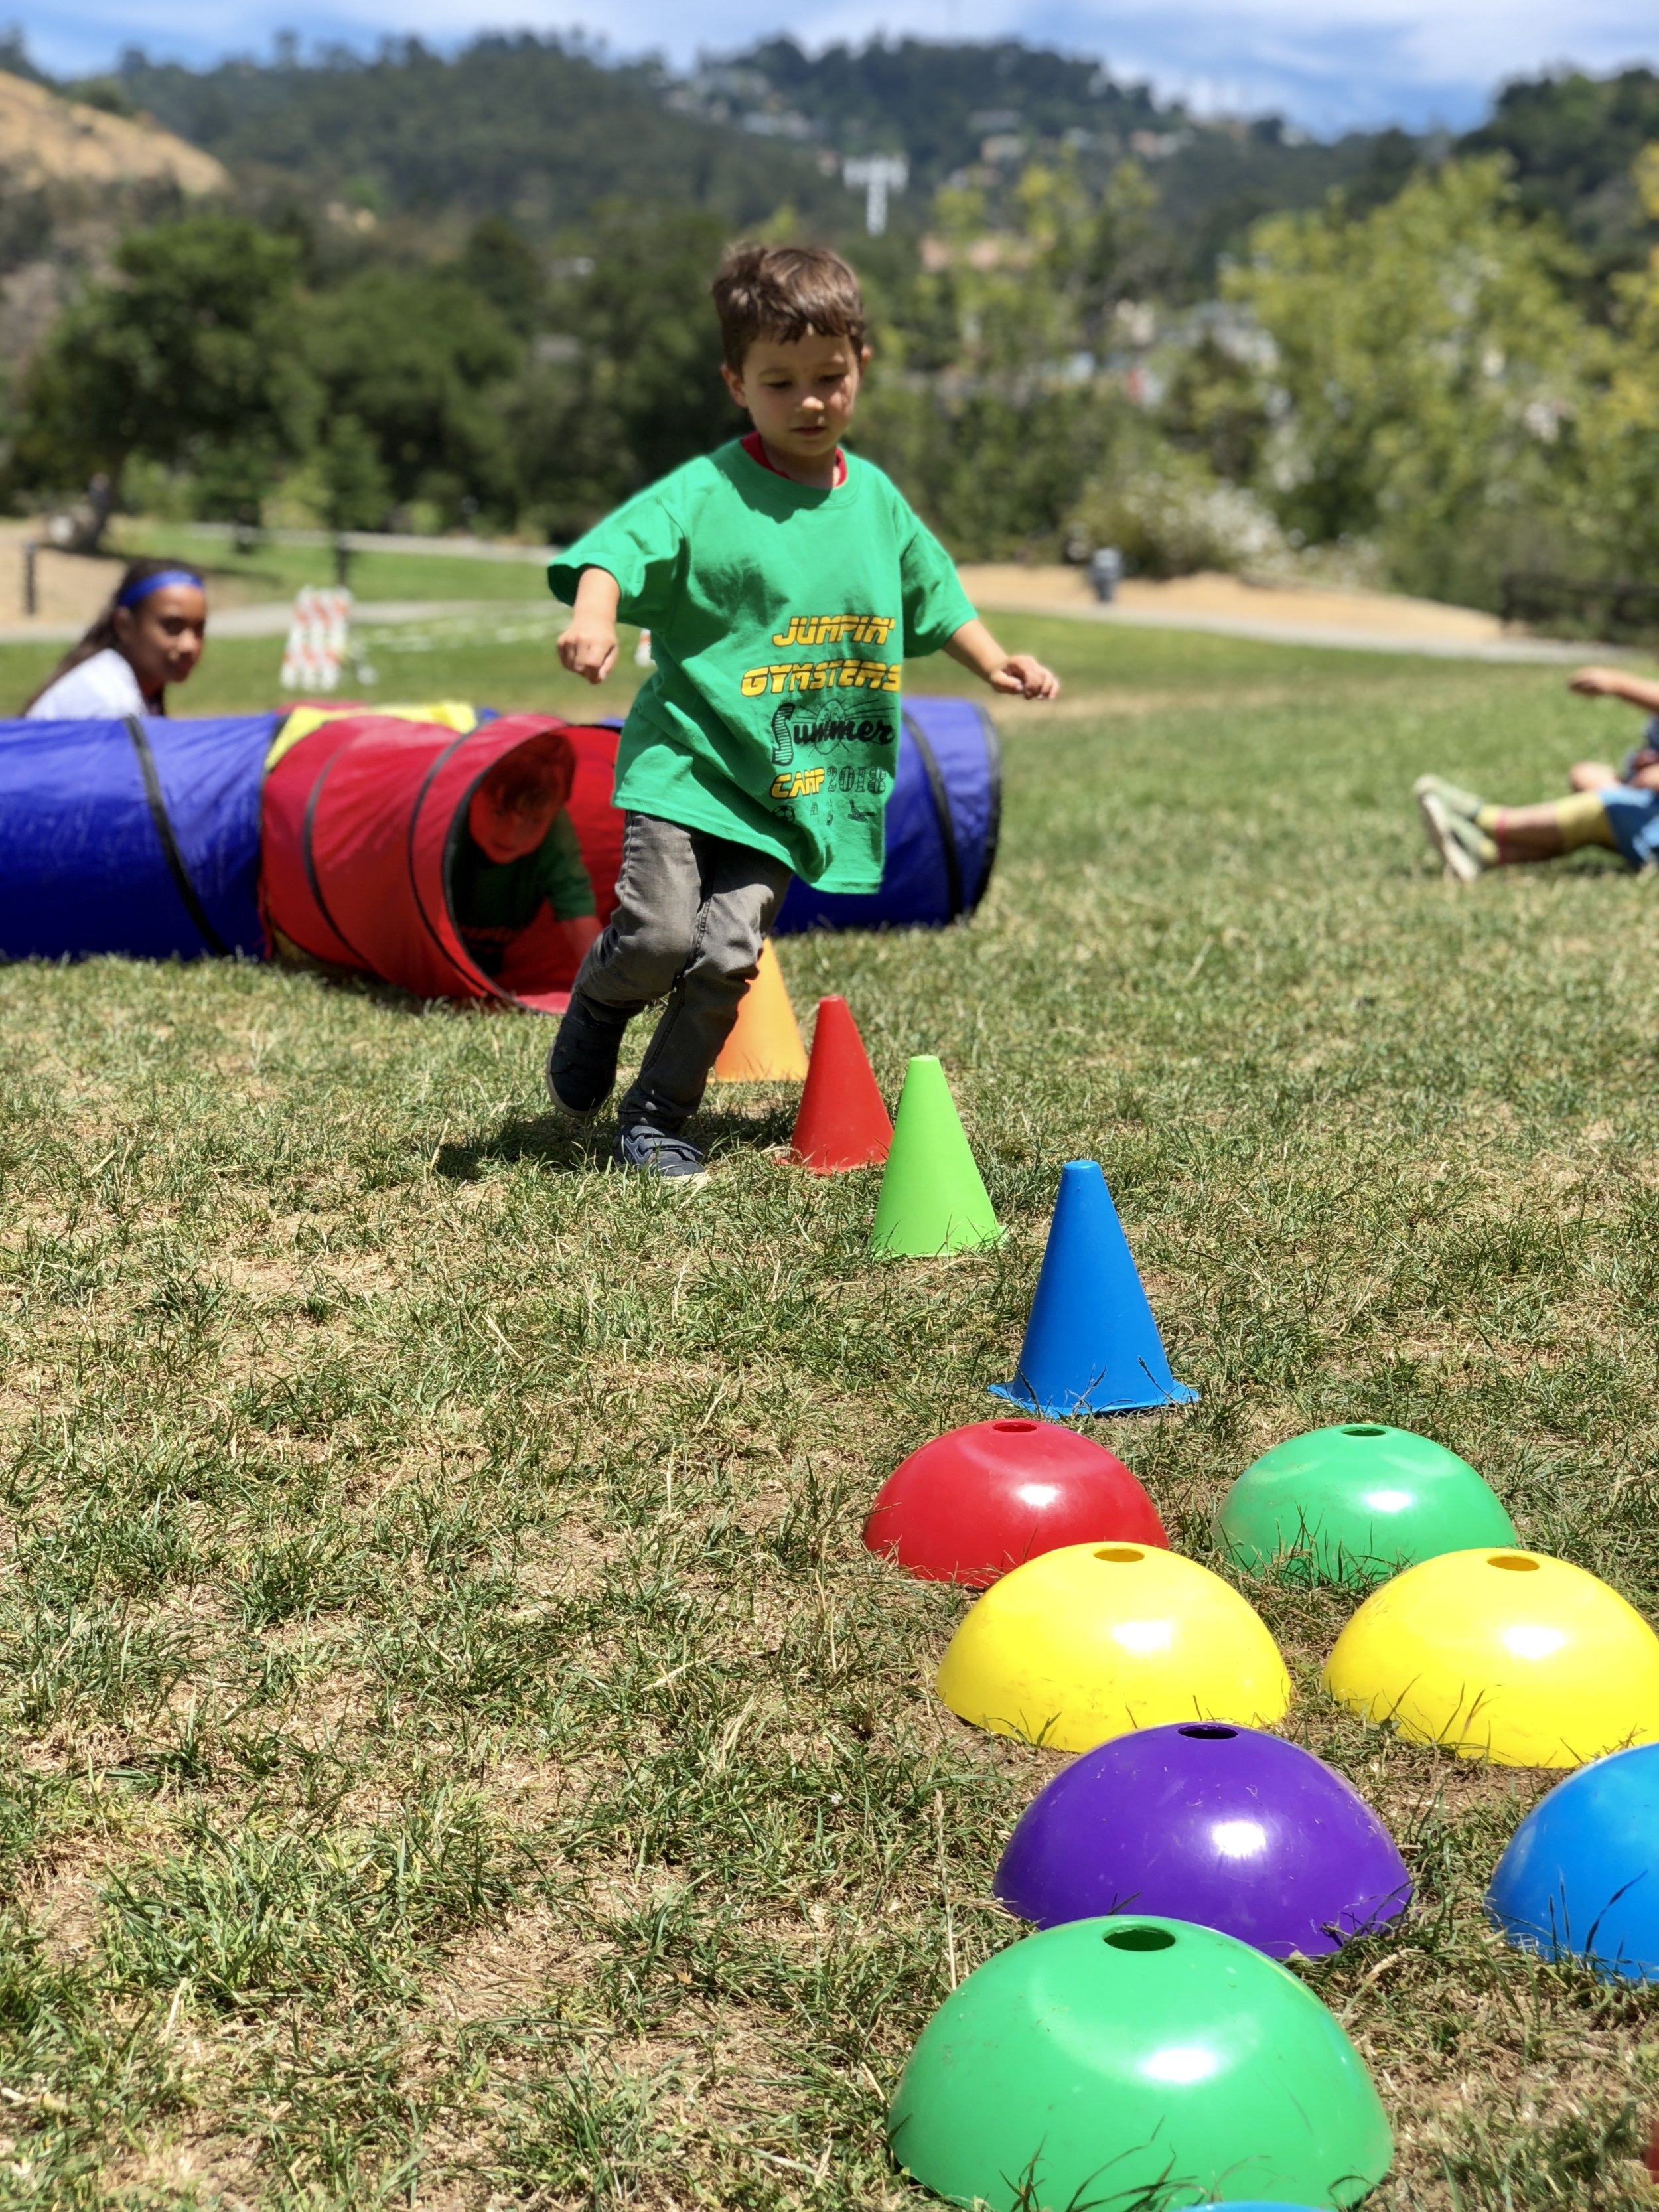 Ninja Warrior Training - OBSTACLE COURSES THAT CHALLENGE SPEED, AGILITY, STRENGTH AND ENDURANCE THROUGH CLIMBING, SPRINTING, JUMPING OVER HURDLES AND MORE!